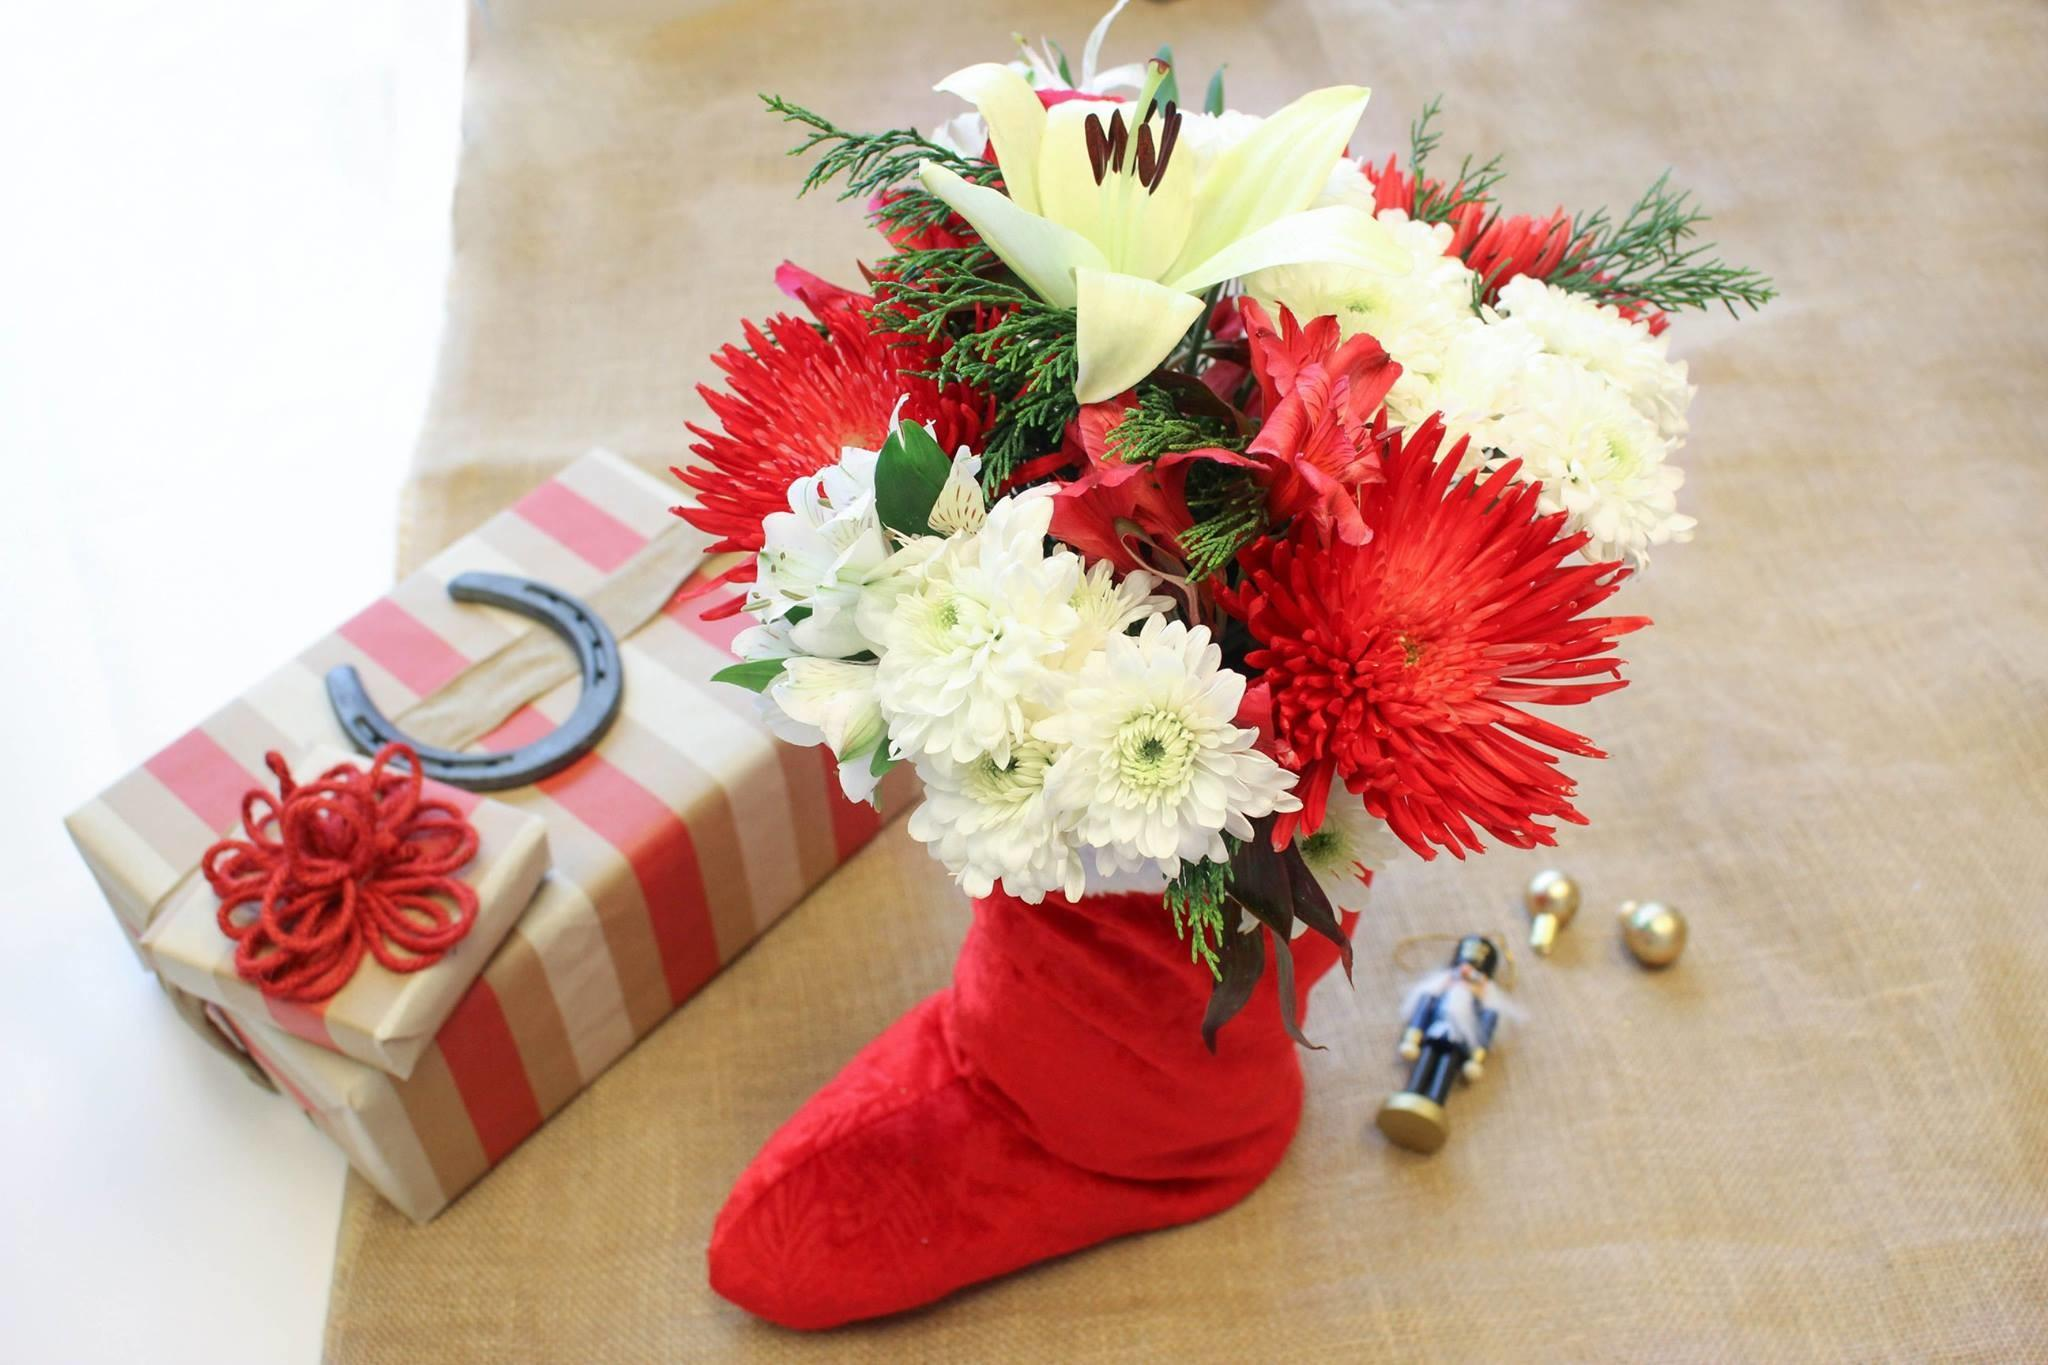 Diy Ideas Using Holiday Flowers Lone Star Living